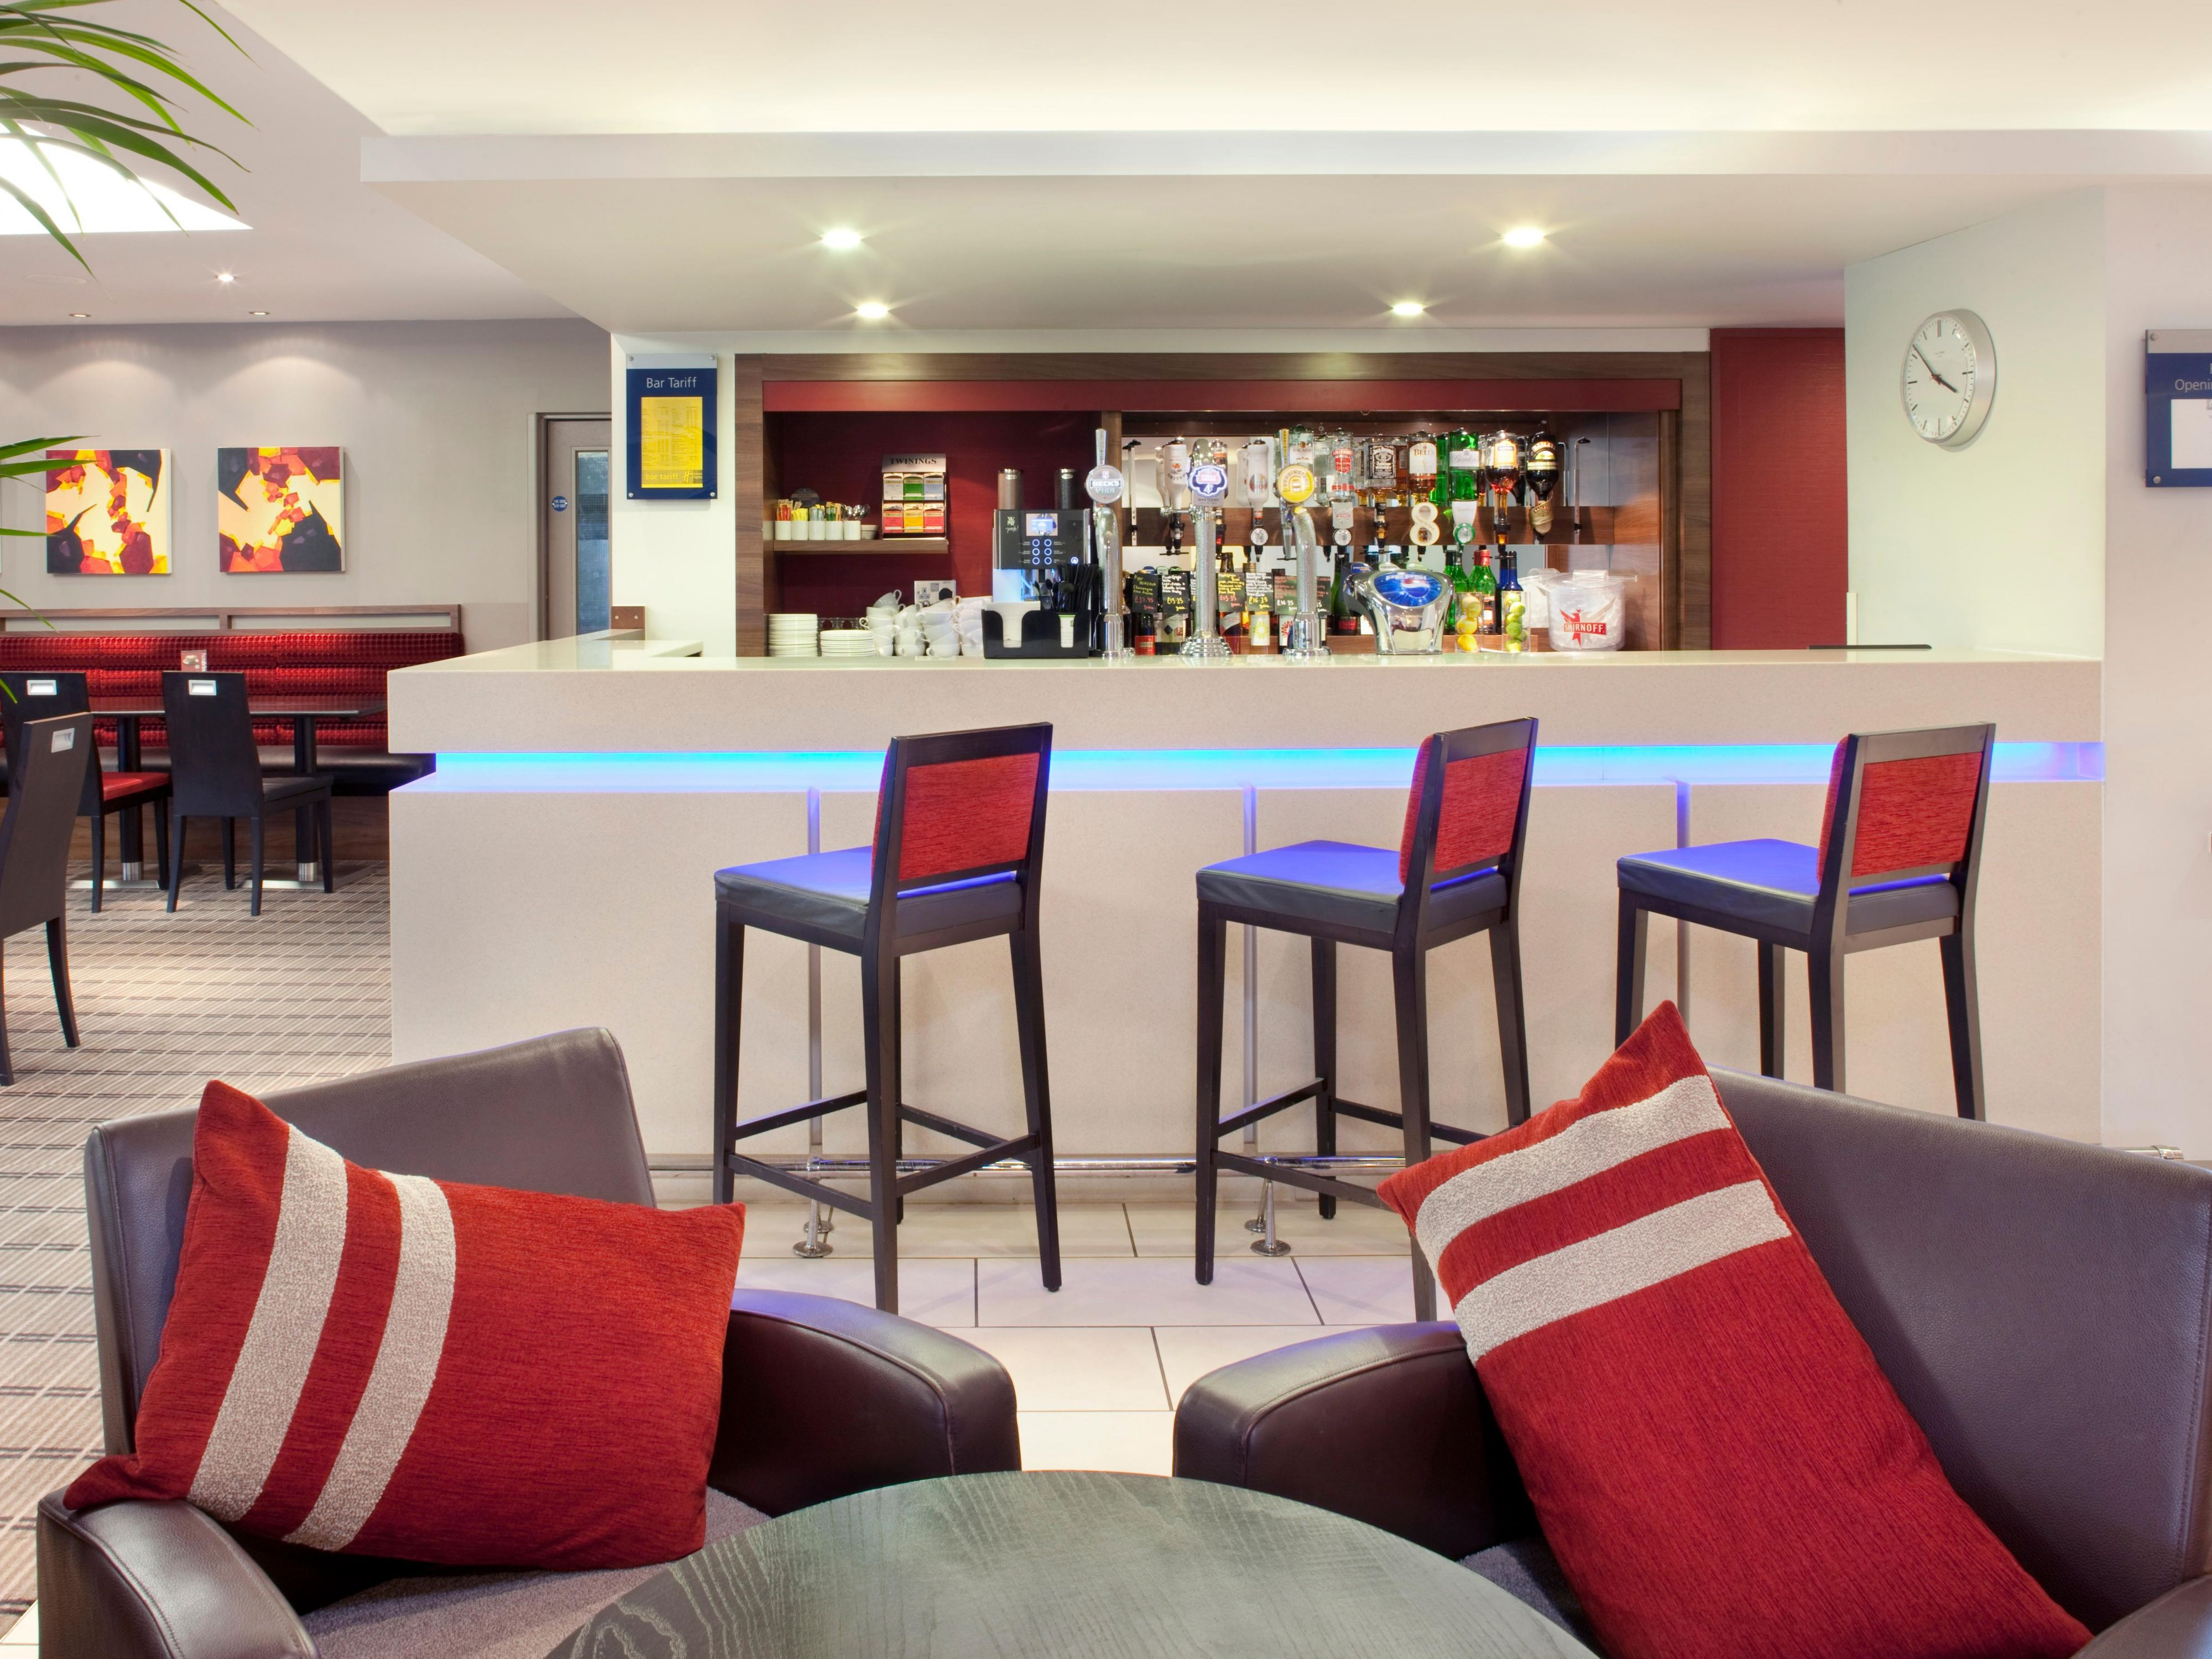 Order drinks at the bar at Holiday Inn Express hotel in Warwick